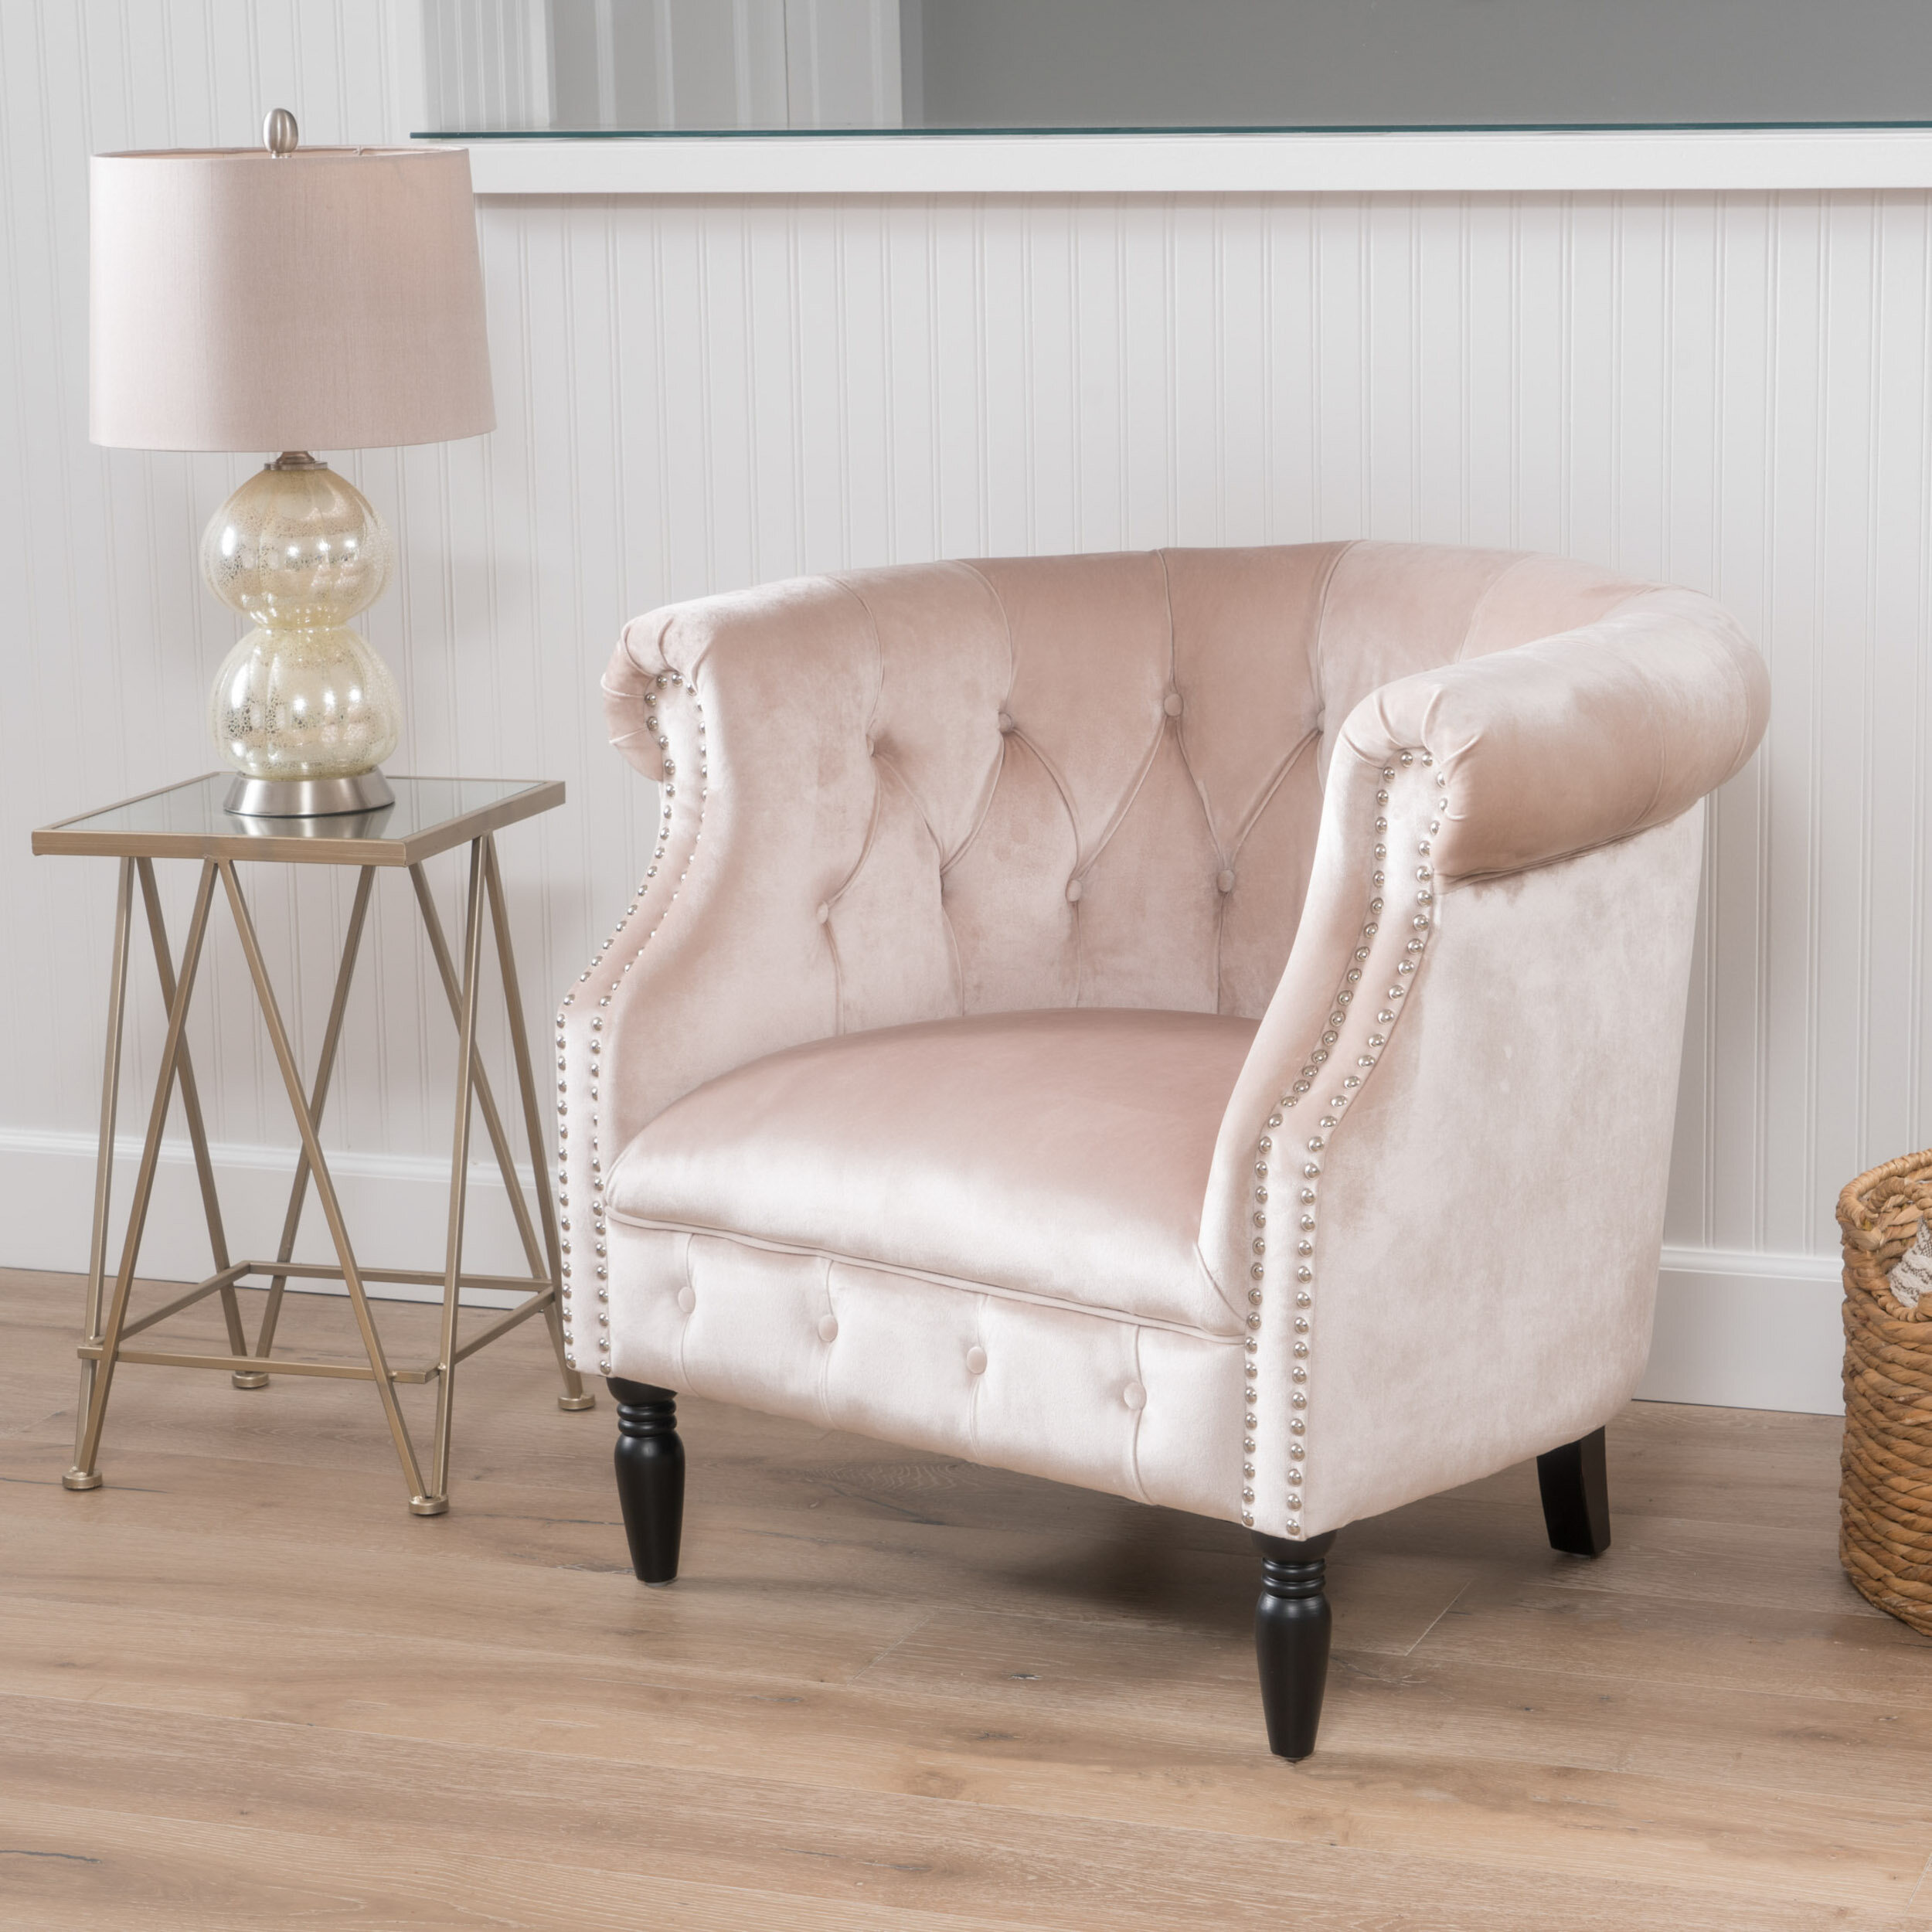 motivated peculiarities associate chesterfield by have sofa define sale chesterfeld chair info firmly immortal the its fuses to customary clearance served in sofas that product extend exemplary these black ensure